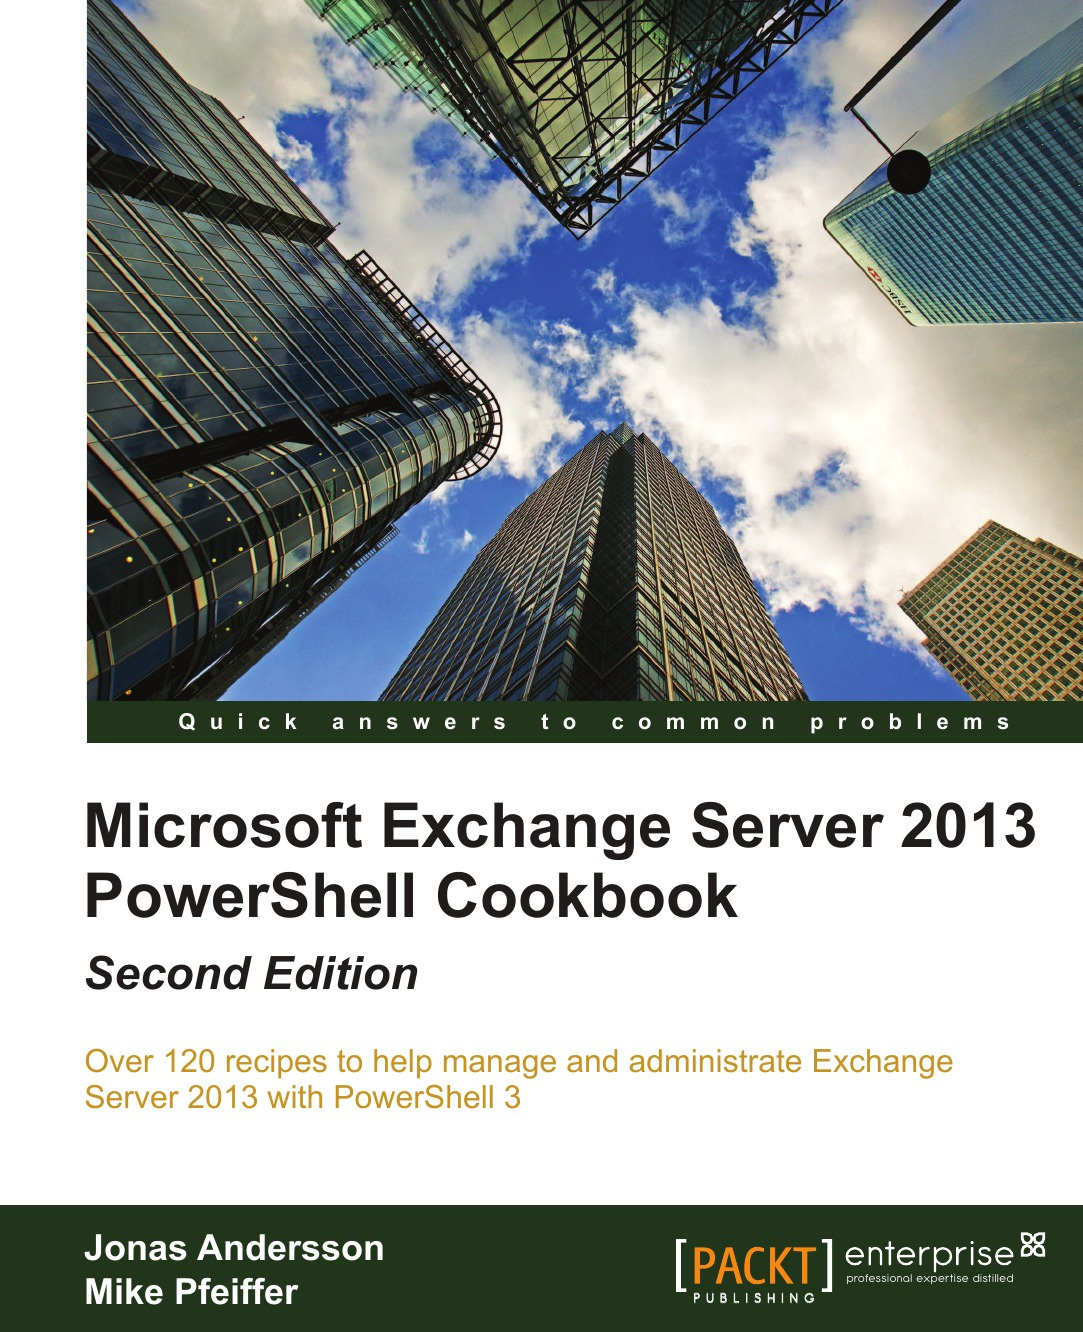 Jonas Andersson, Mike Pfeiffer Microsoft Exchange Server 2013 Powershell Cookbook. Second Edition моримото р ноэл м ярдени г амарис к и др microsoft exchange server 2013 полное руководство